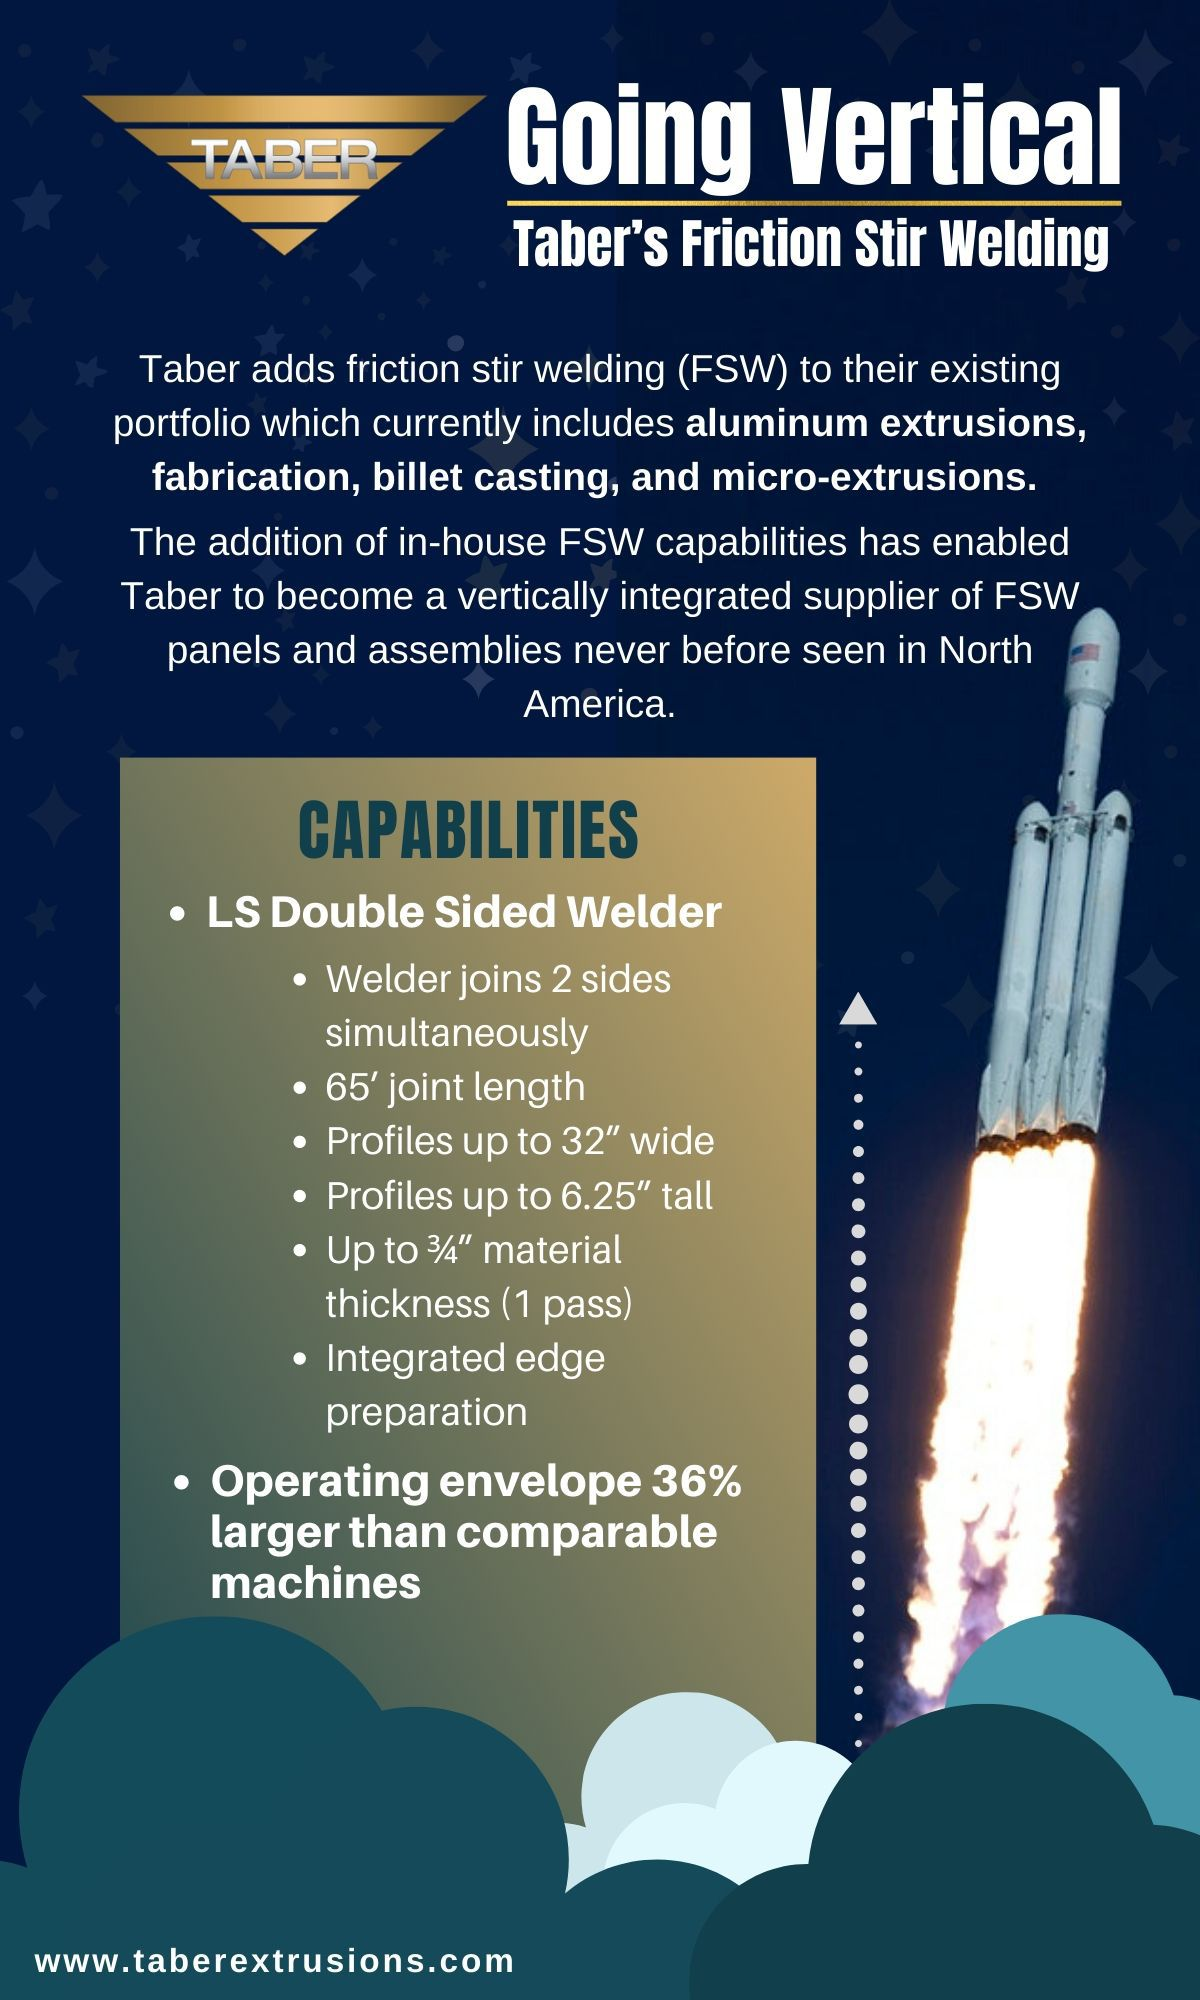 Taber's Friction Stir Welding Capabilities Infographic